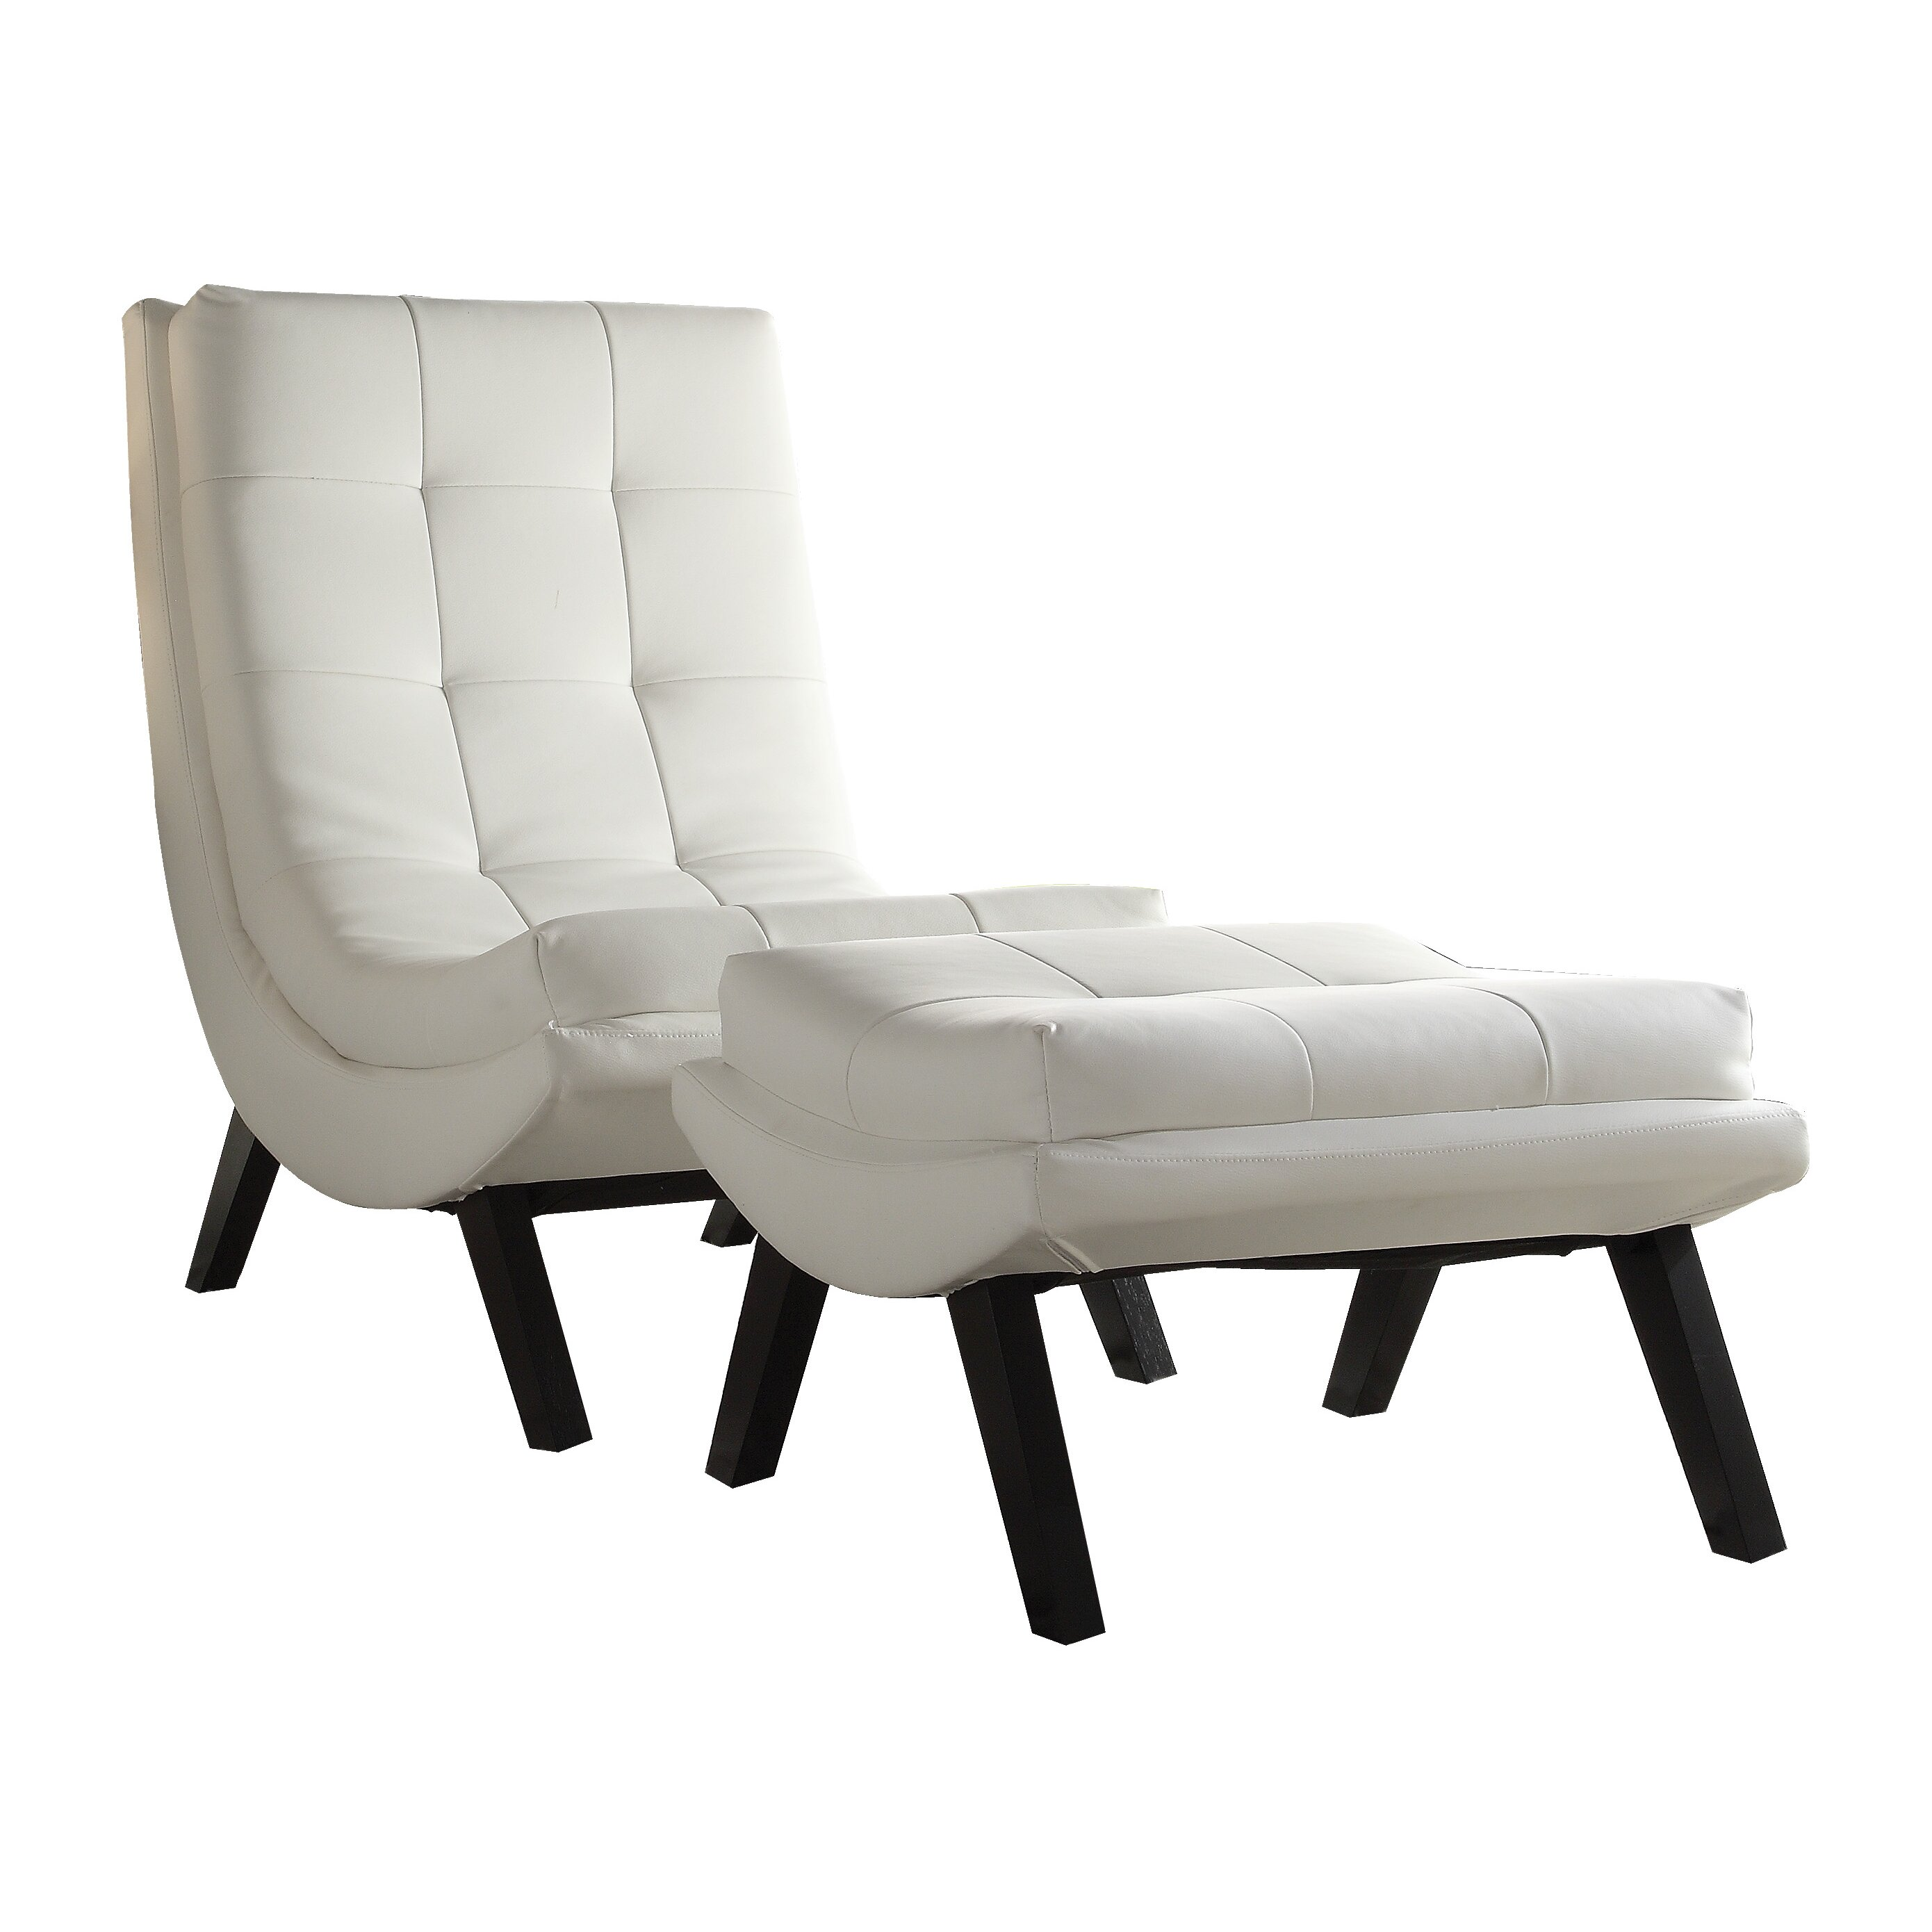 Corrigan Studio Dmitri Lounge Chair and Ottoman Set